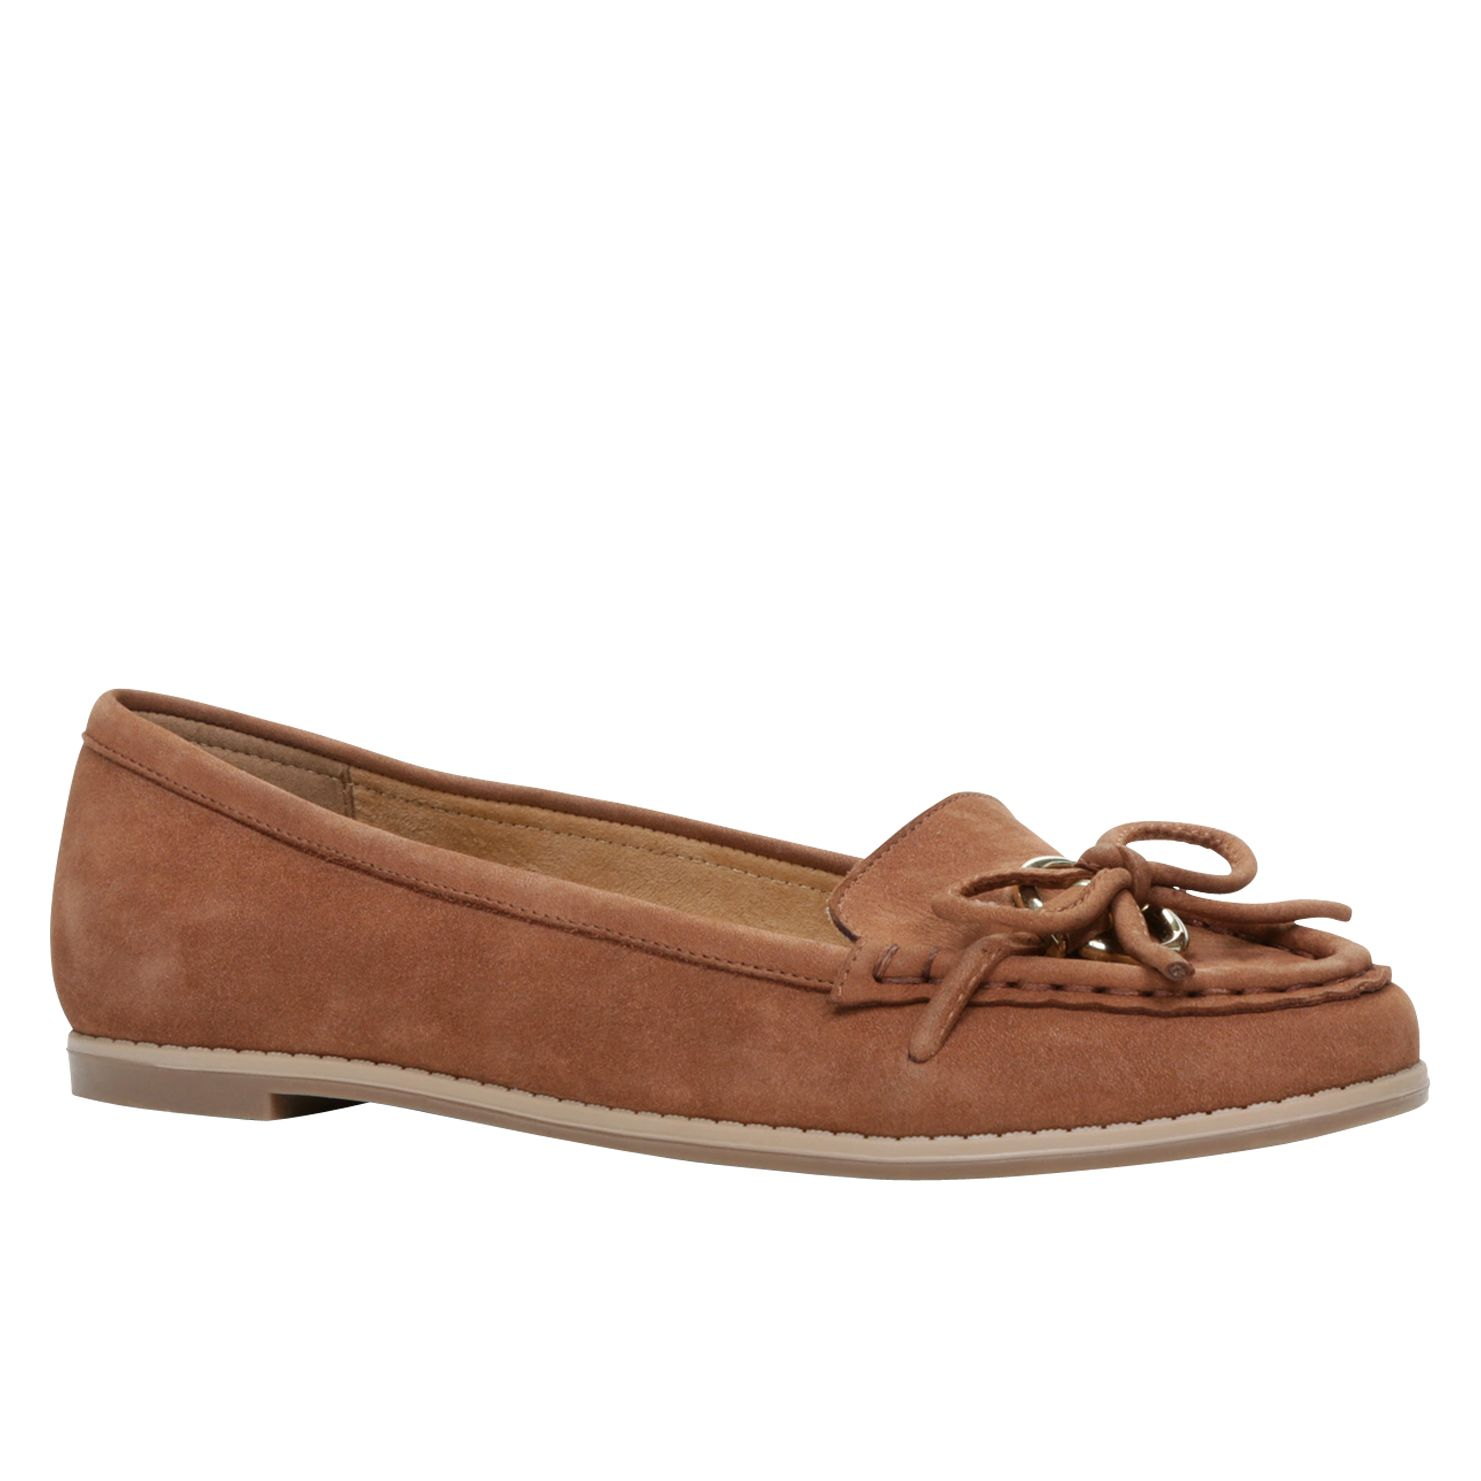 Unalevia loafer pump shoes